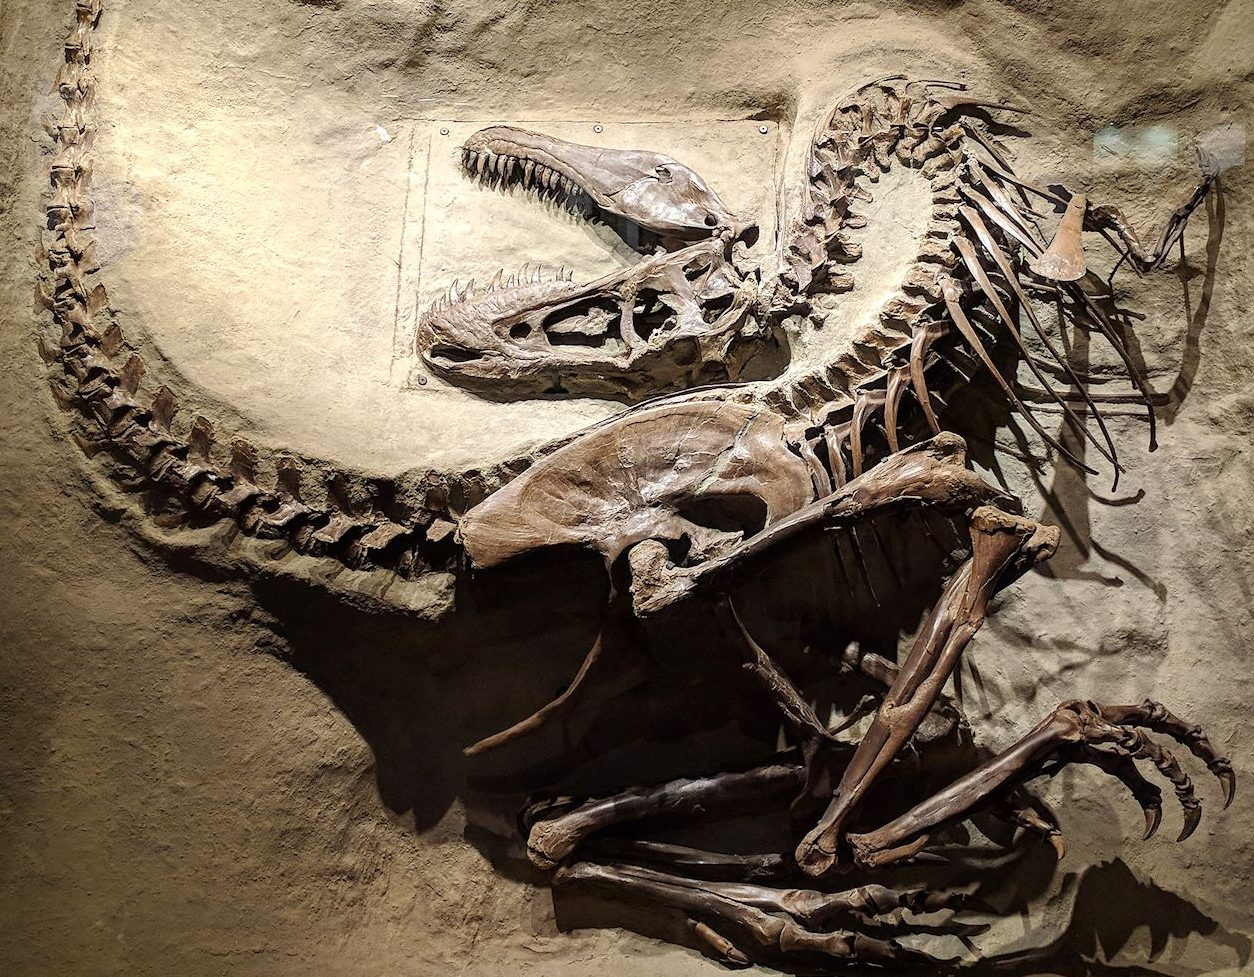 Gorgosaurus specimen on display at the Royal Tyrell Museum.